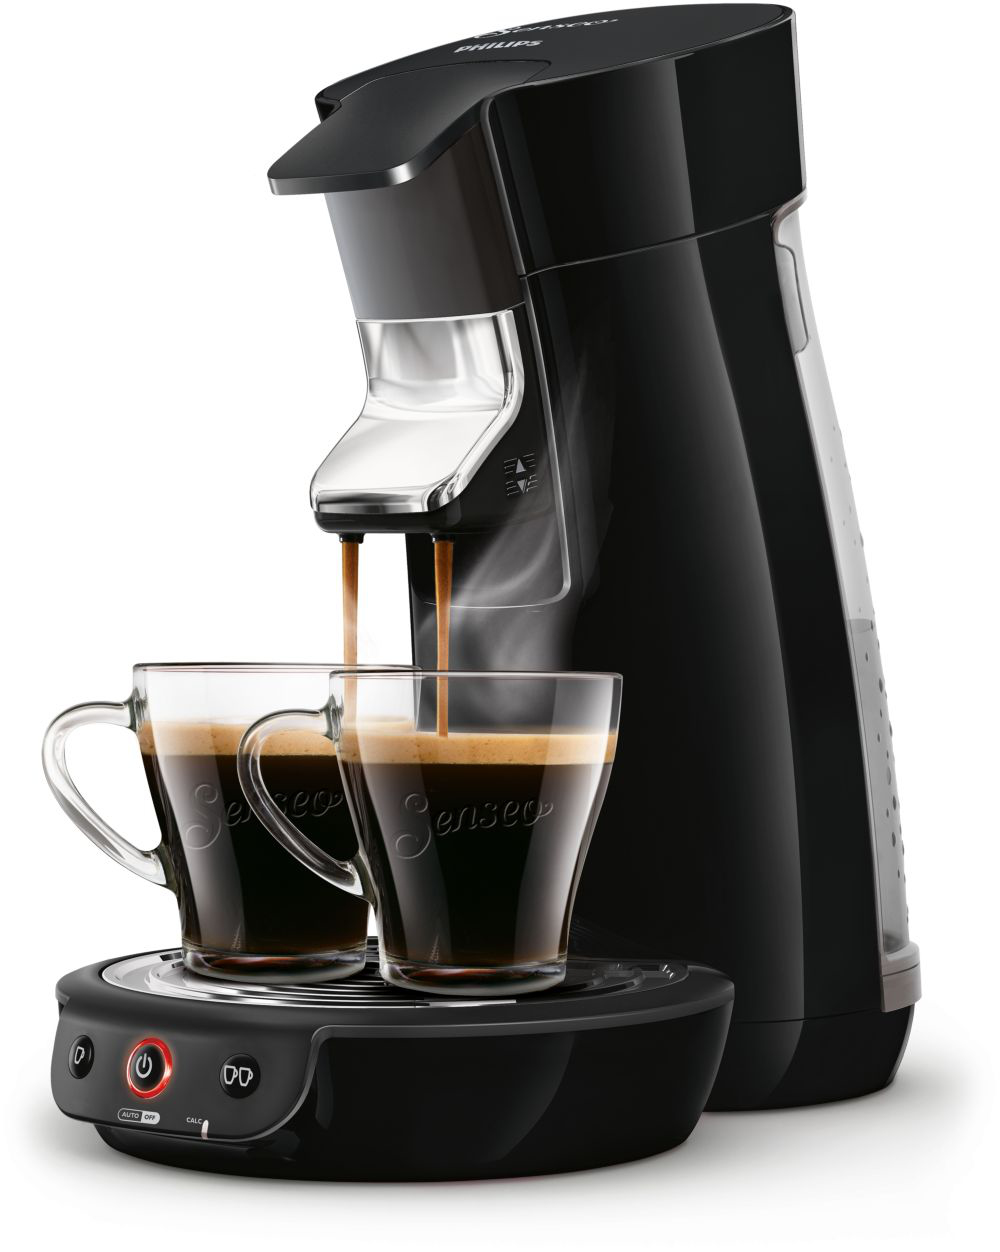 philips senseo viva caf hd7829 60 kaffeemaschine. Black Bedroom Furniture Sets. Home Design Ideas